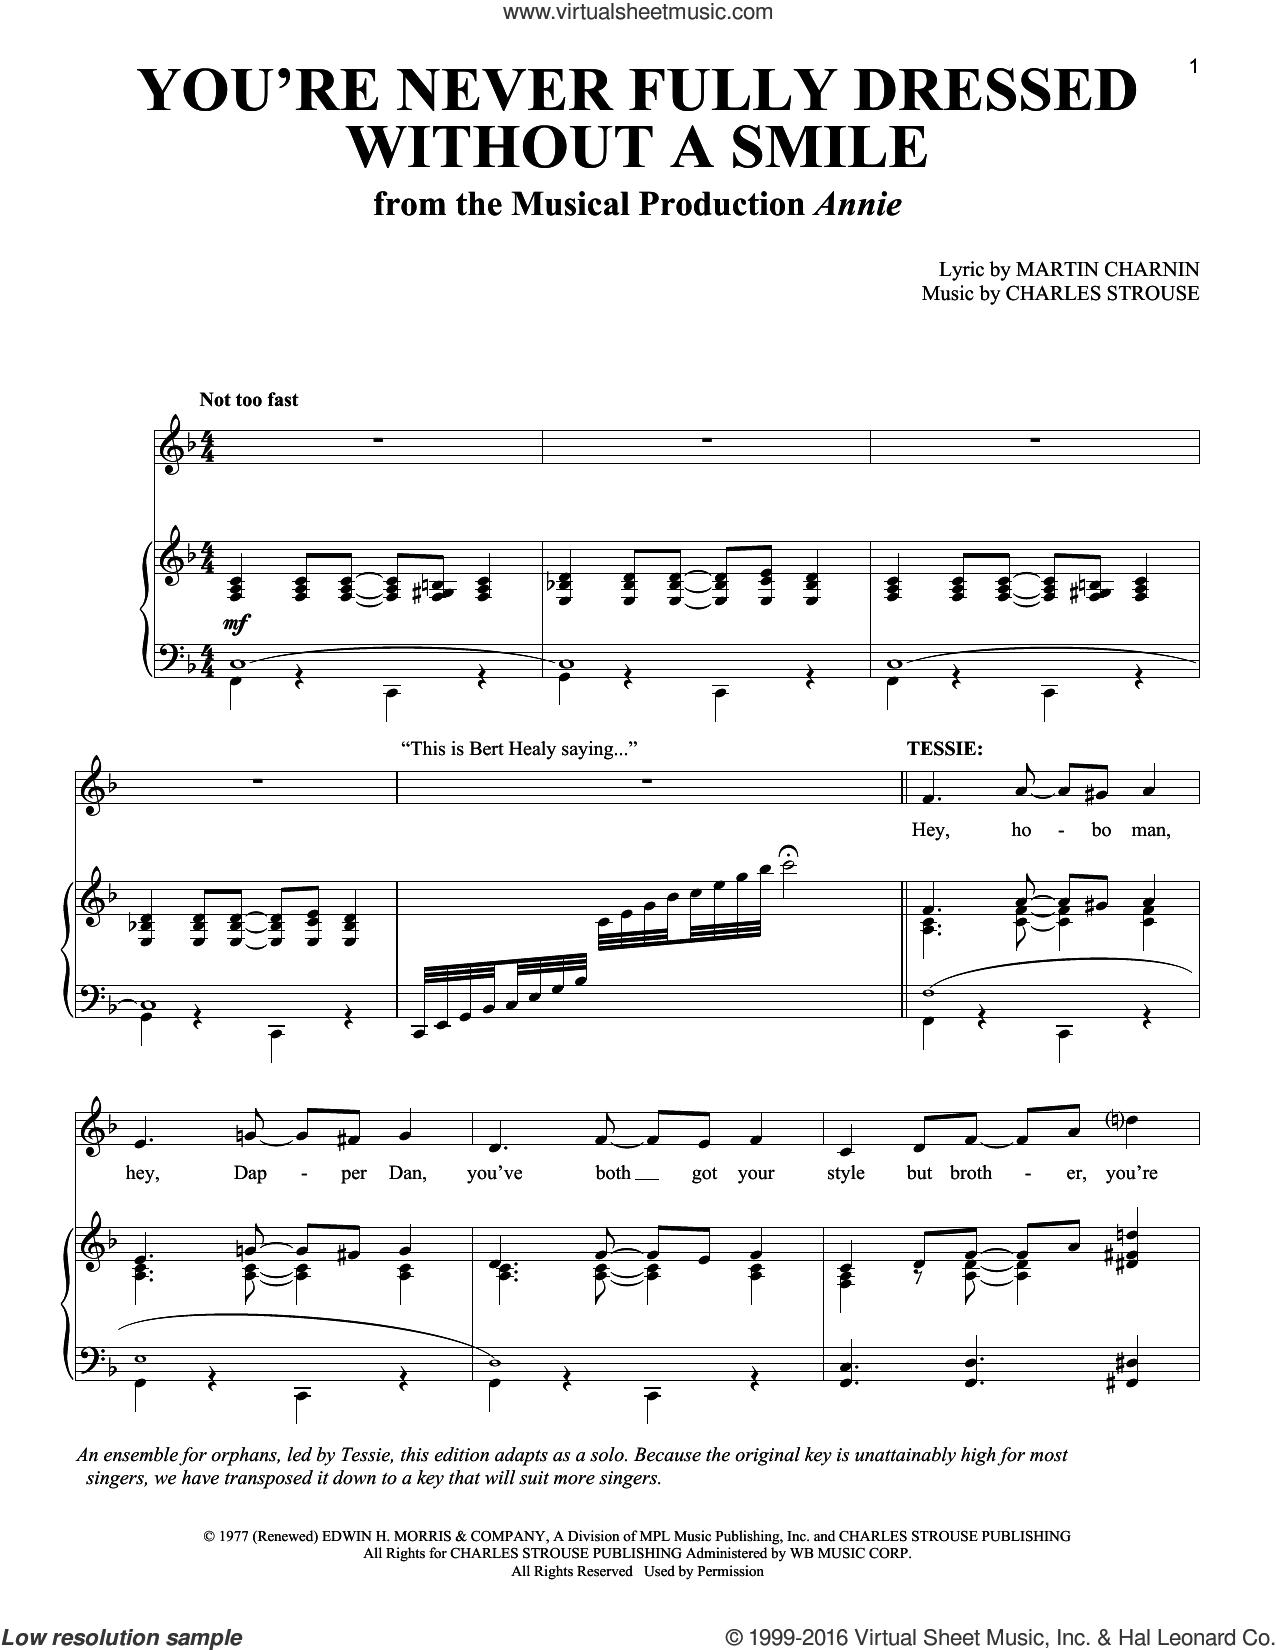 You're Never Fully Dressed Without A Smile sheet music for voice and piano by Martin Charnin and Charles Strouse, intermediate skill level